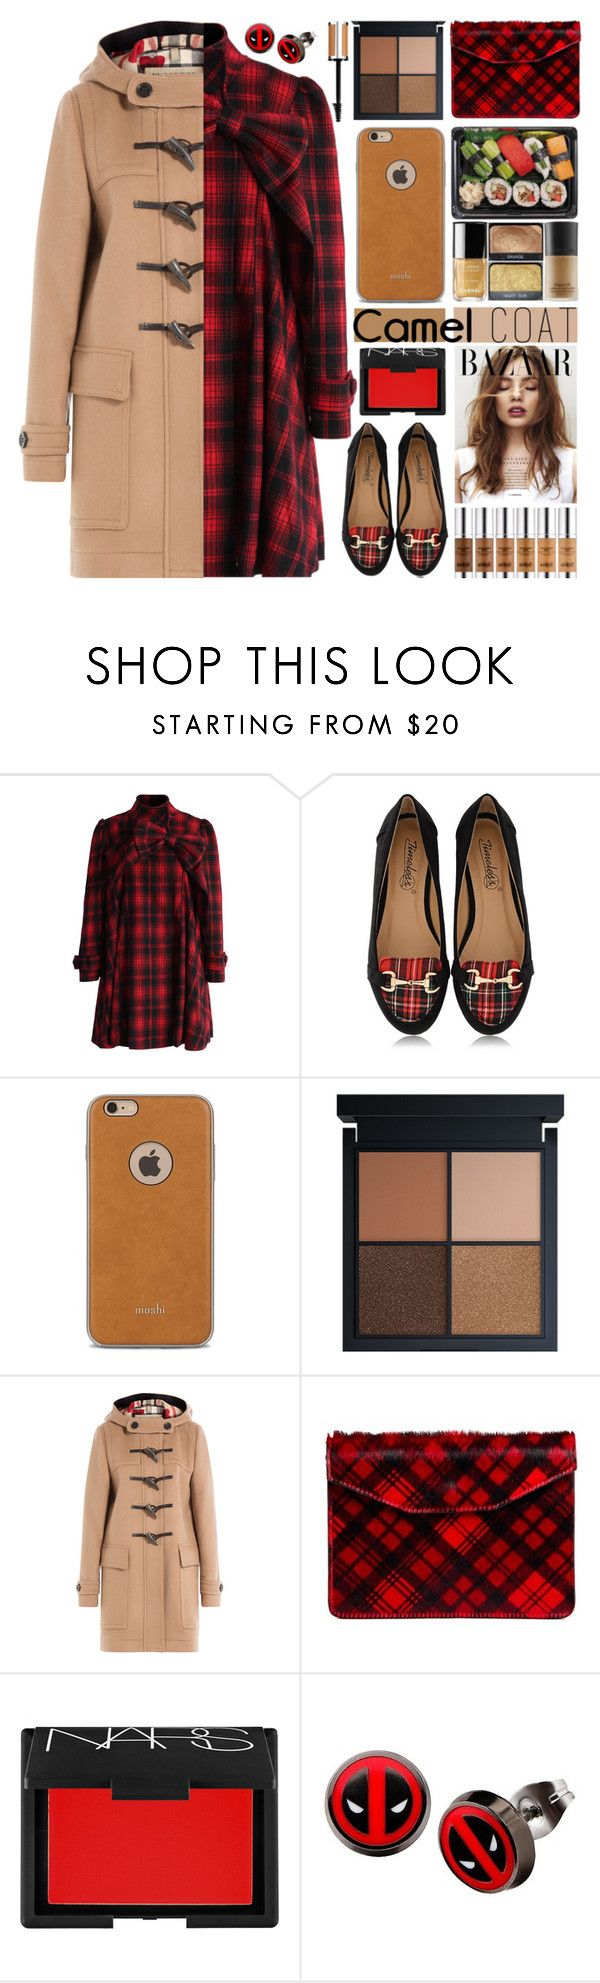 Wear a Camel Coat! by barbarela11 on Polyvore featuring Chicwish, Burberry, Timeless, Jas M.B., Marvel, Moshi, NARS Cosmetics and Givenchy